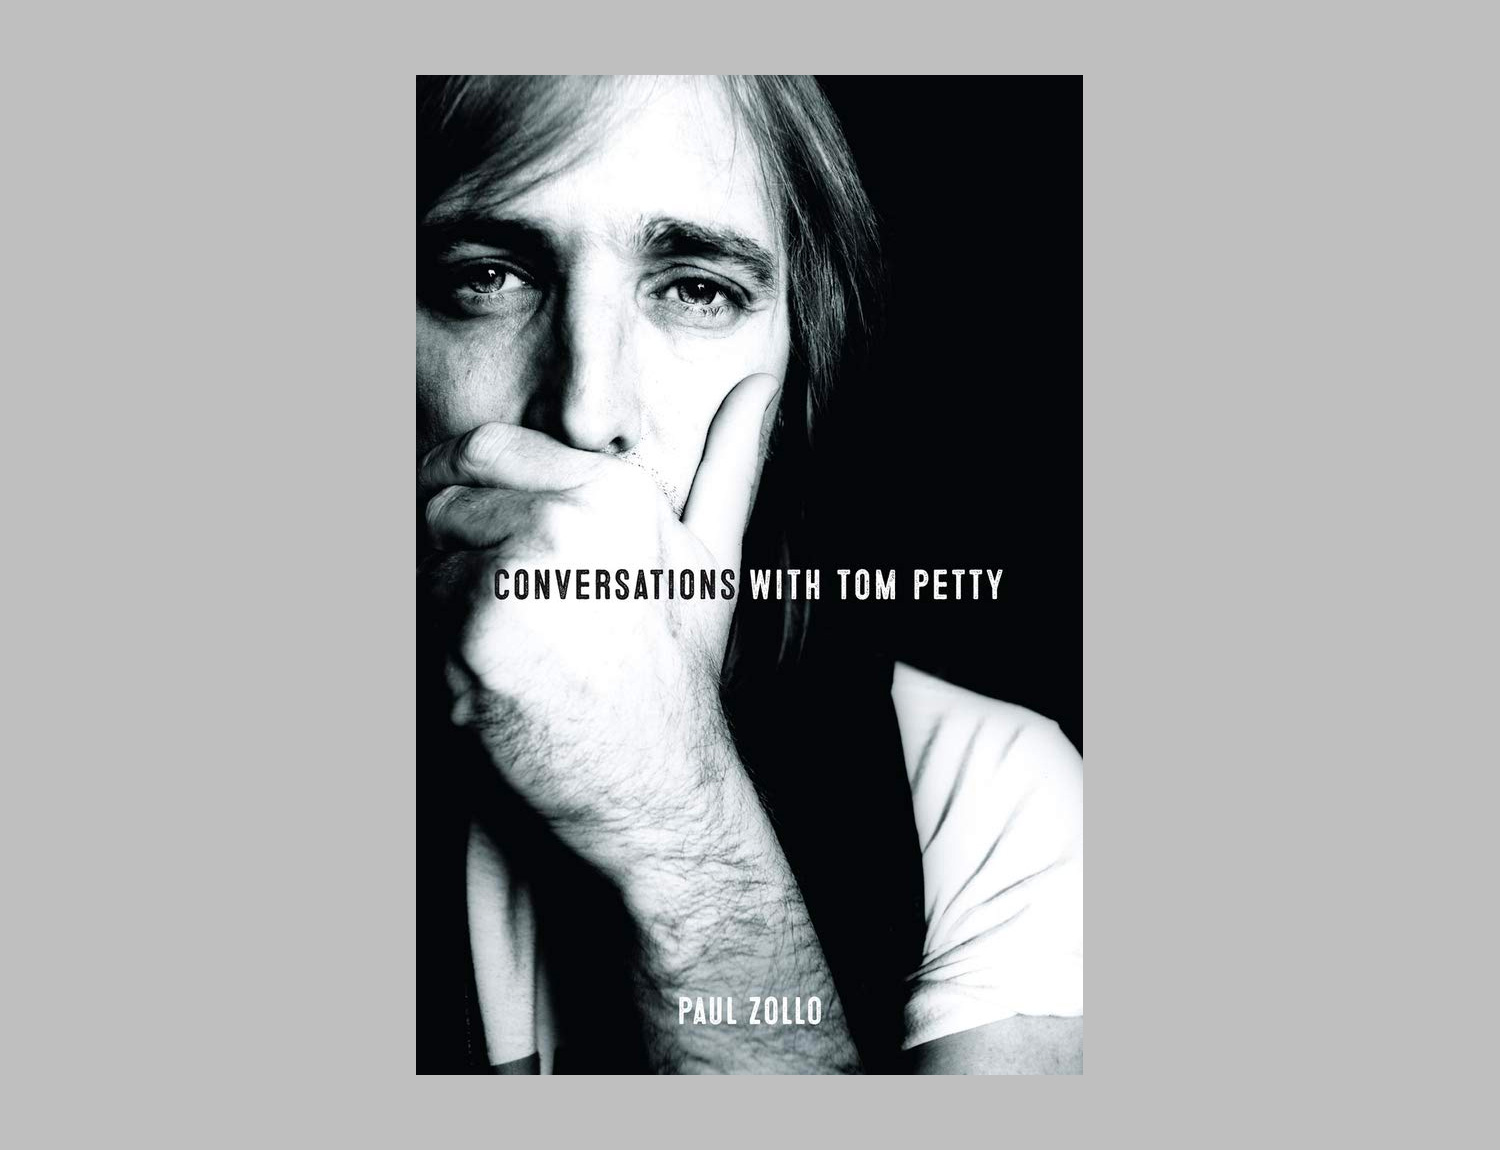 Conversations With Tom Petty at werd.com